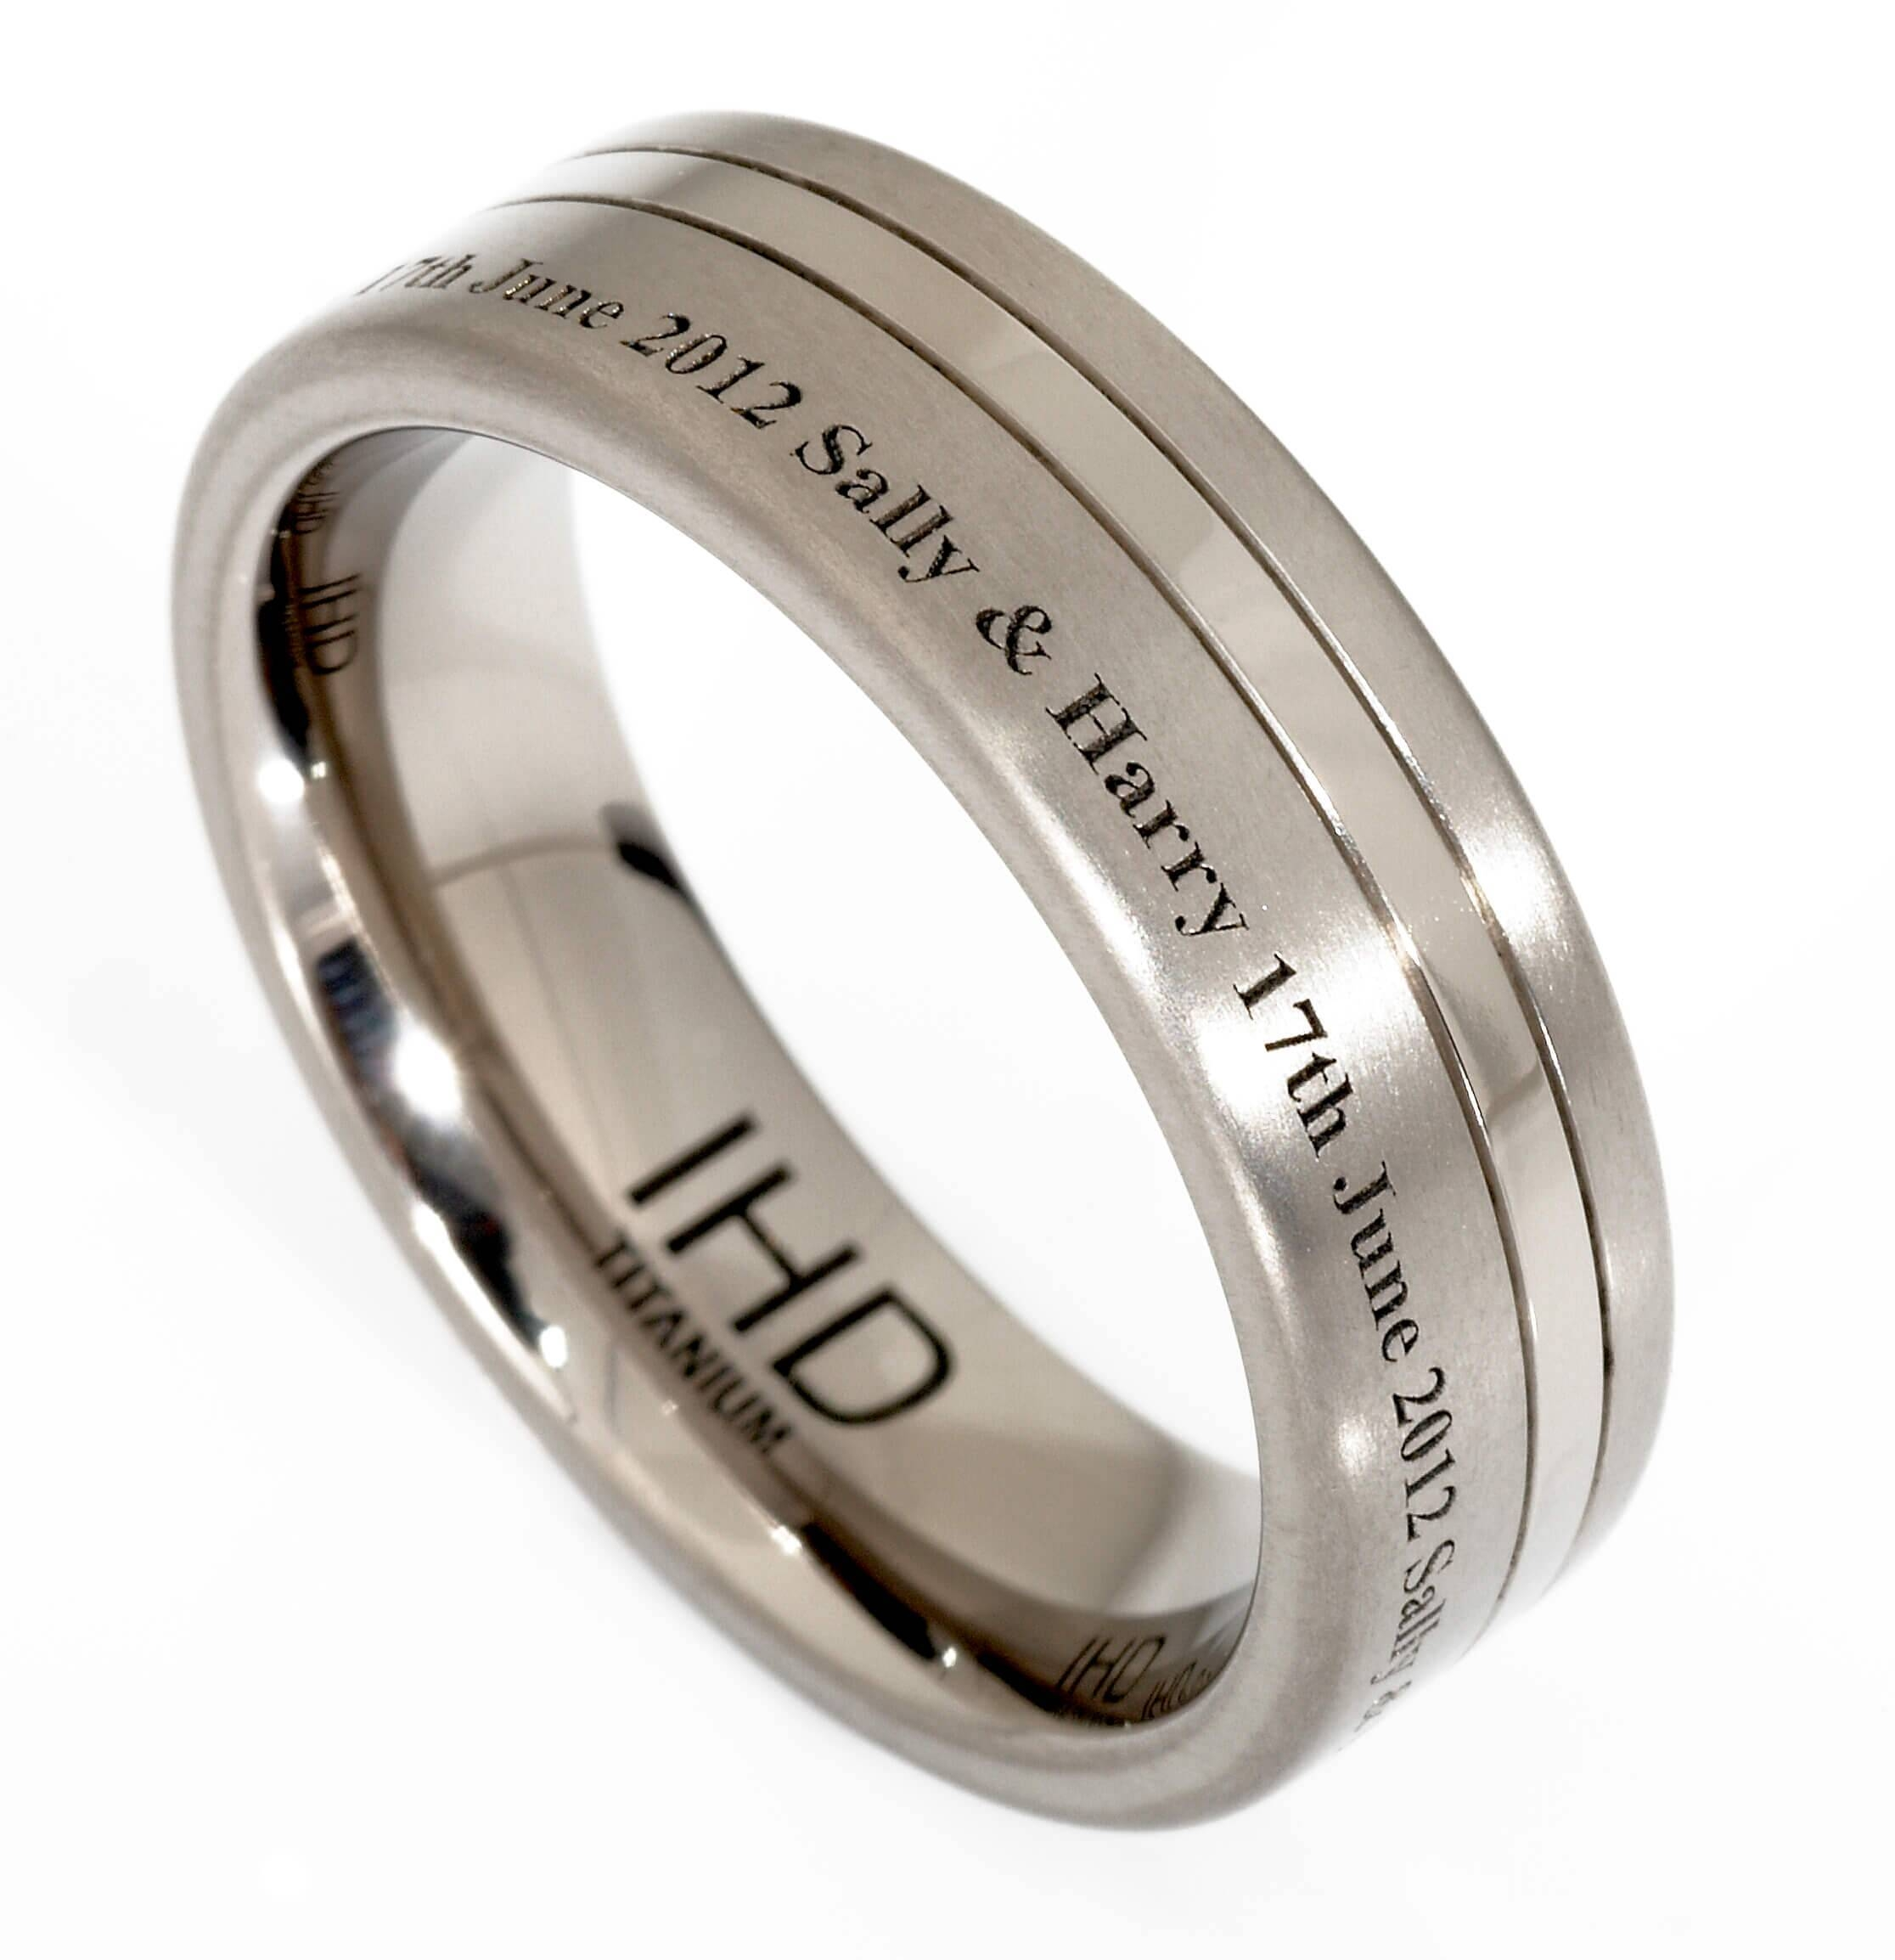 Men's Wedding Rings Archives – Iain Henderson Designs In Engravable Men's Wedding Bands (View 5 of 15)